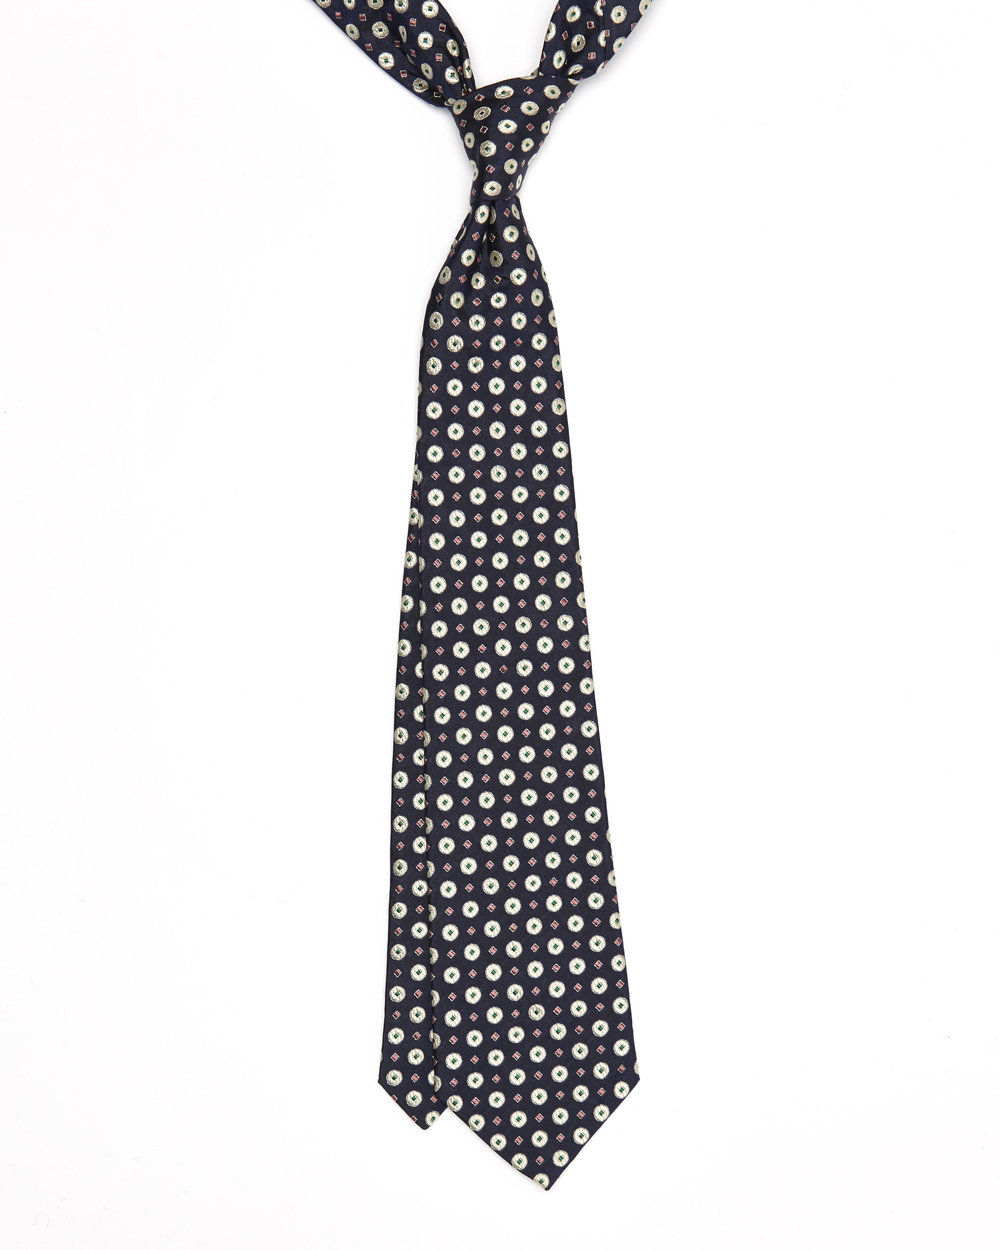 Oscar Tie | 100% Silk Jacquard Neat Pattern | Colour: Navy, White, Green & Pink